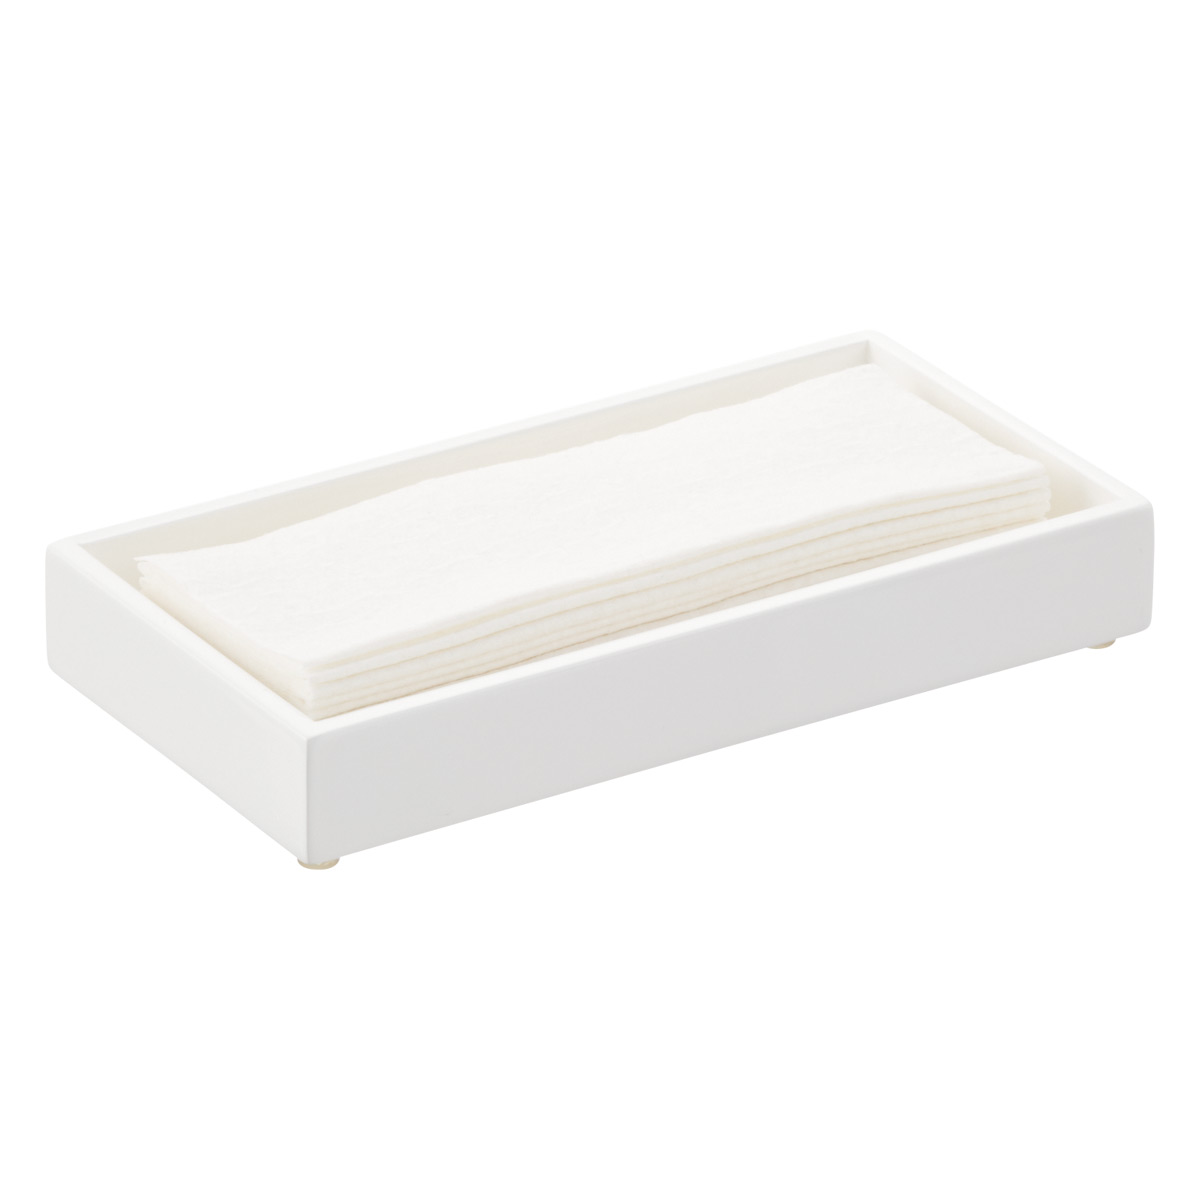 Lacquer Guest Towel Tray